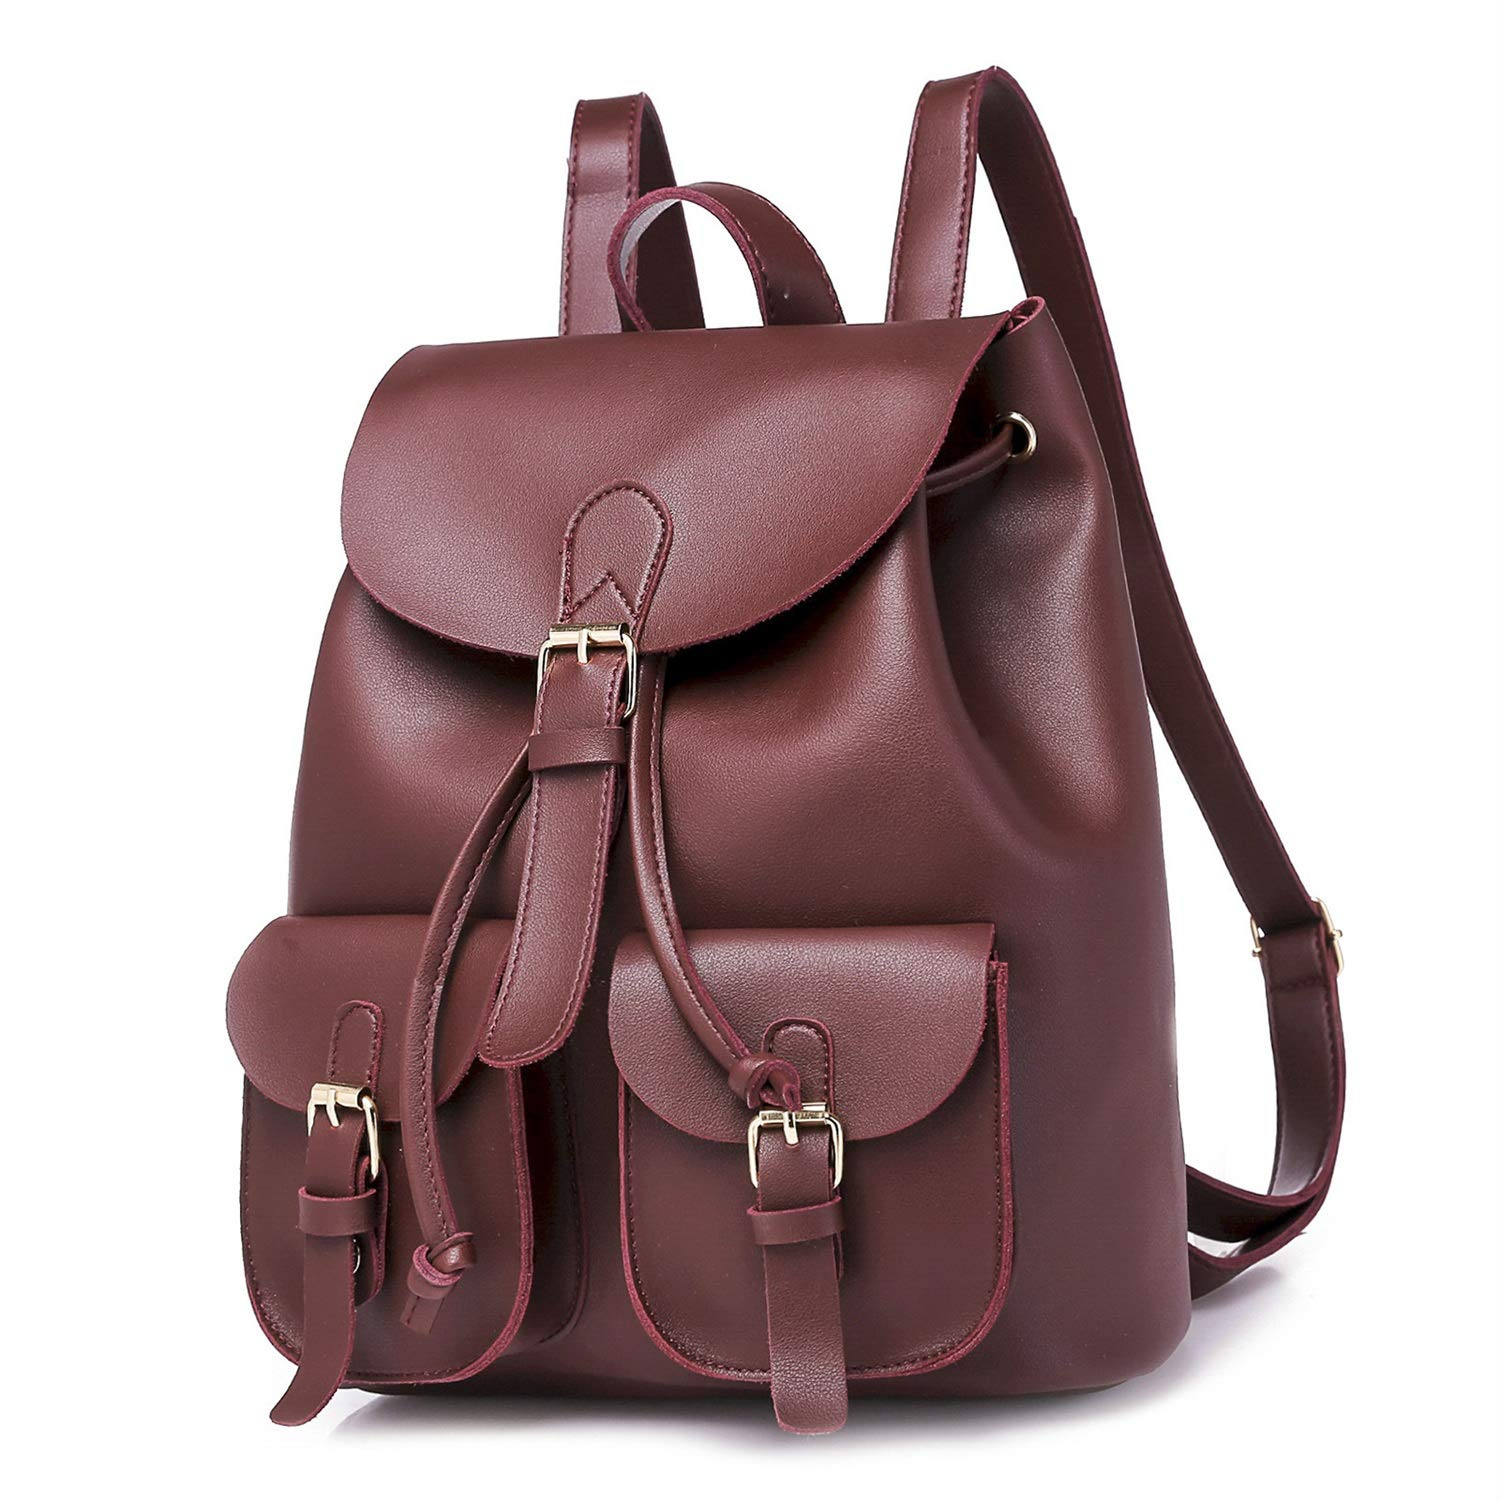 5a5d3ab02356 WUSHIYU Women Backpack Fashion School Leather Backpack Crossbady Shoulder  Bag Mini Backpack for Women   Teenage Girls Four Years Old Optional Women  ...